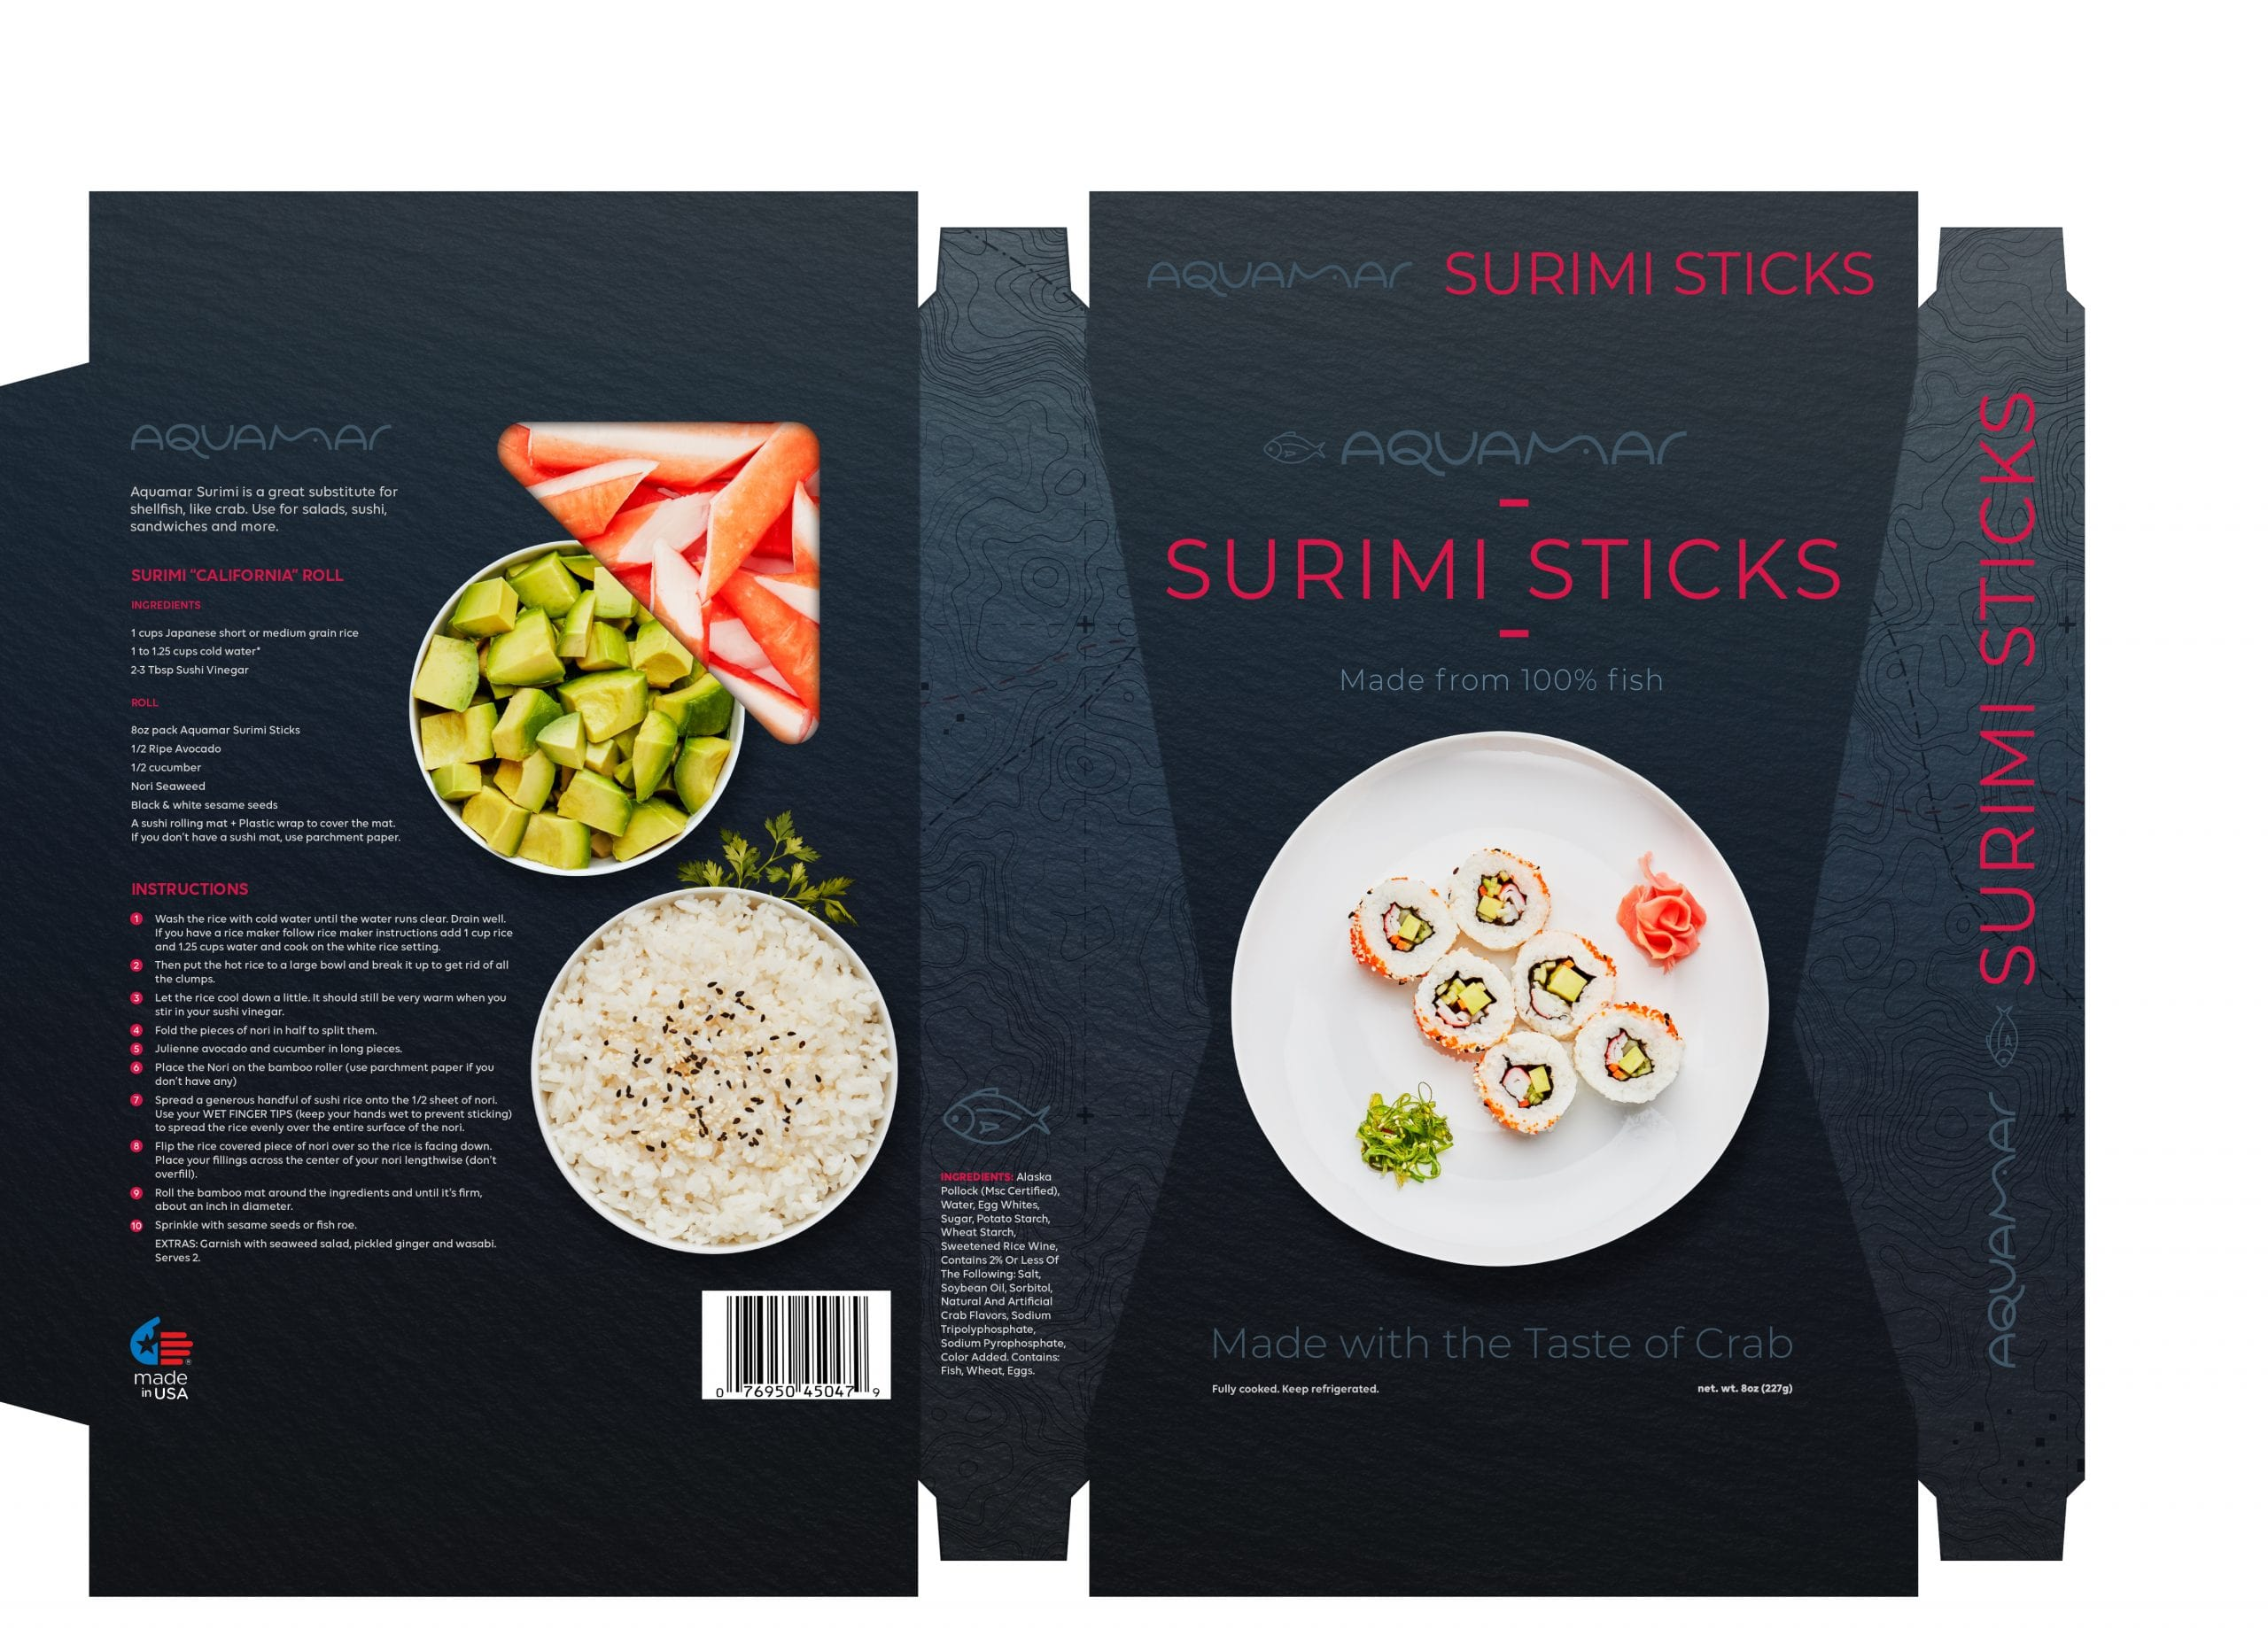 clp_aquamar_flatpackaging_v1_usa_redesign_062620sticks-crab-dark-alt